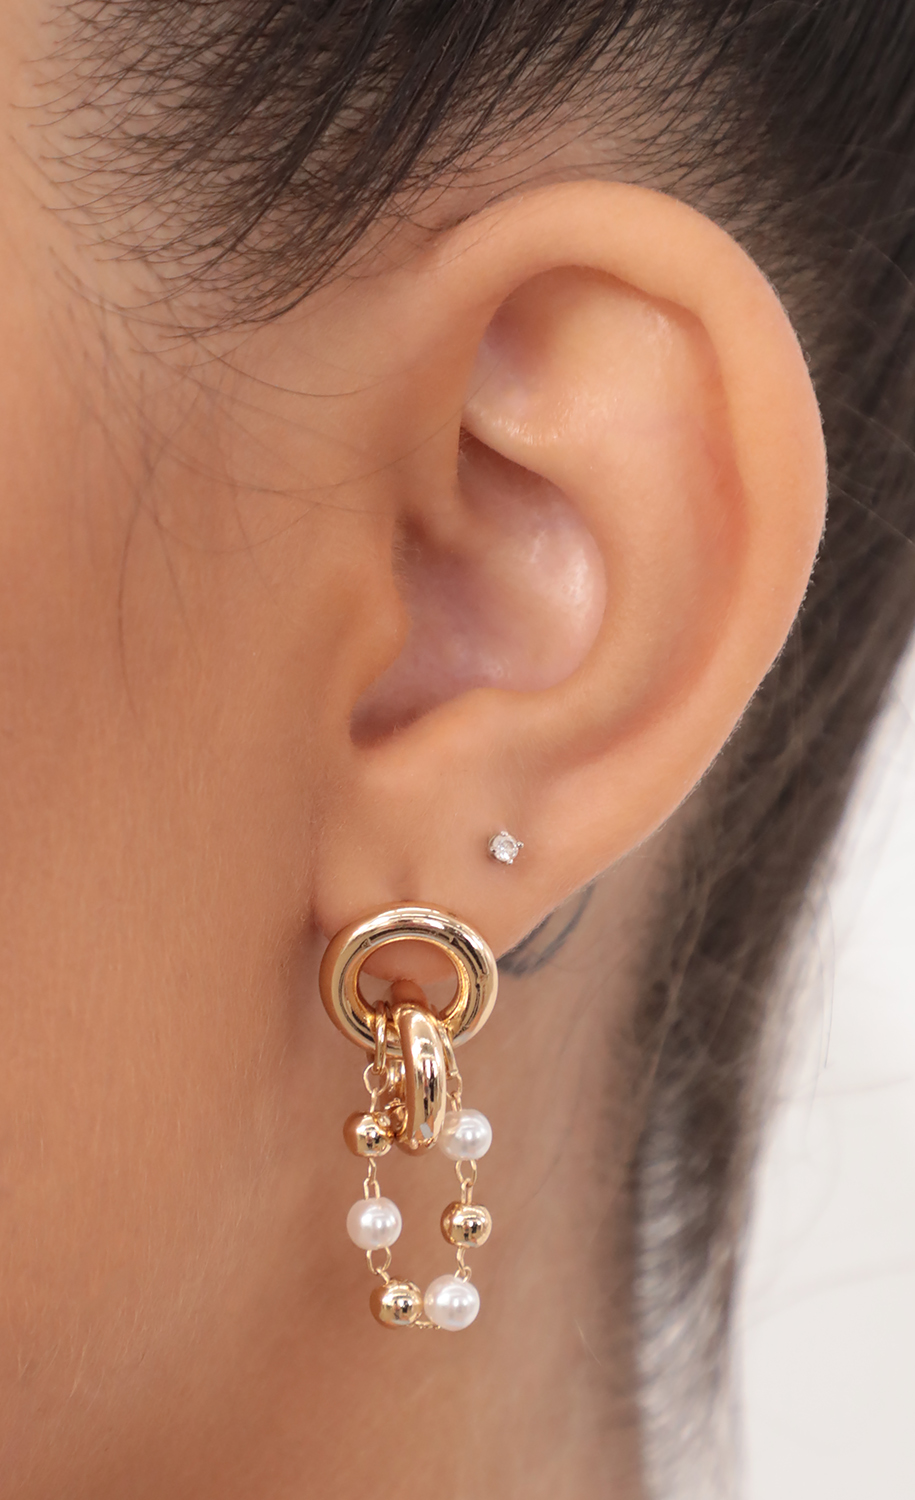 Interlocking Double Circle Stud Earrings With Pearl Chain